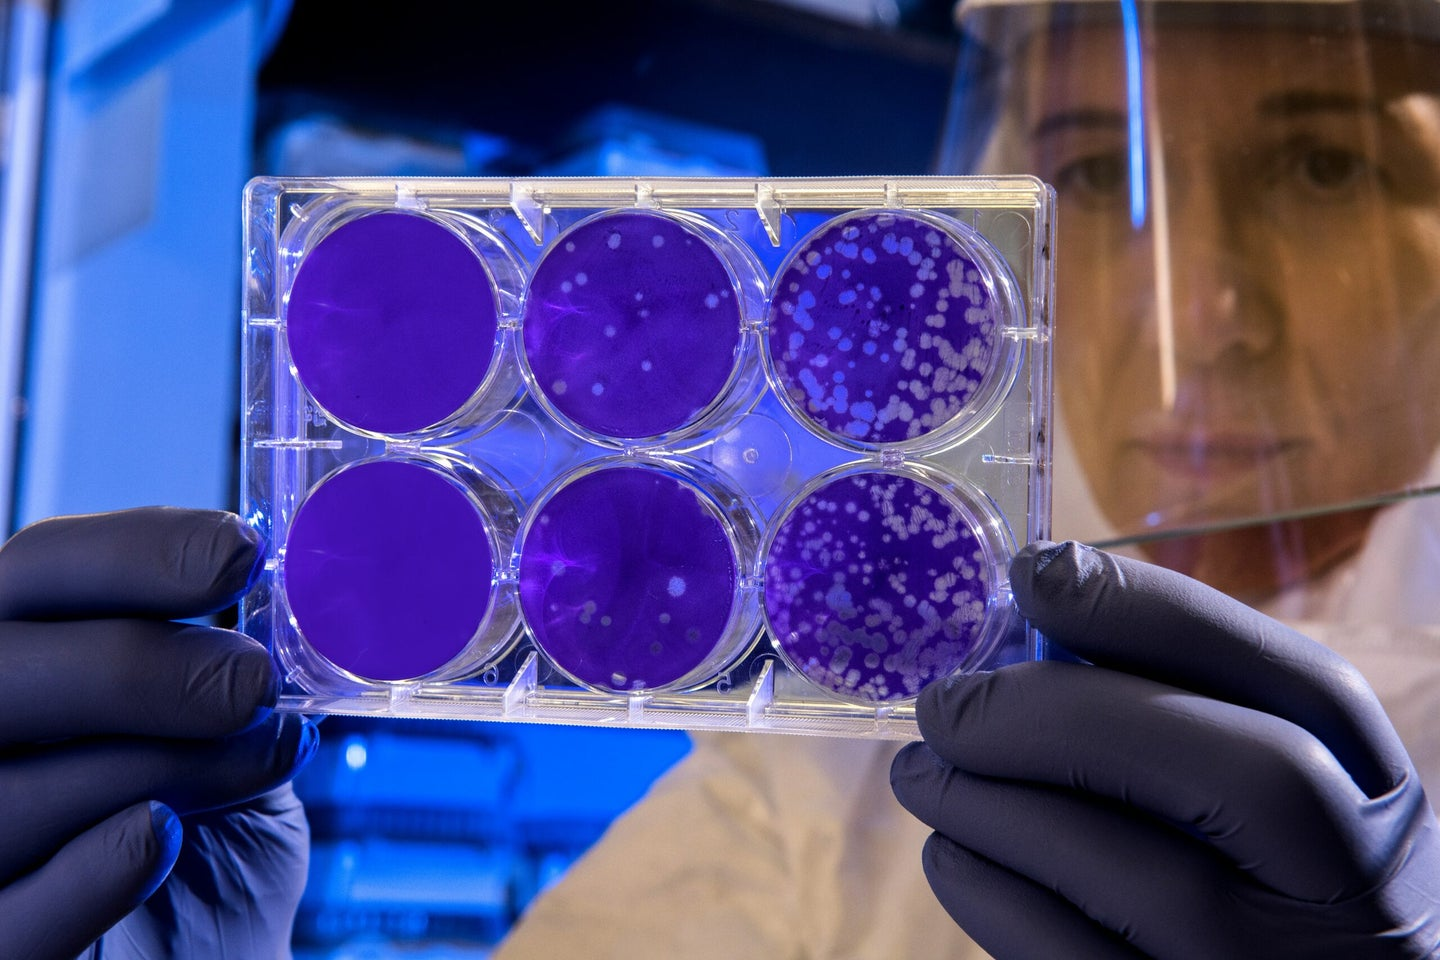 scientist in clean suit holding up a tray of cells stained purple